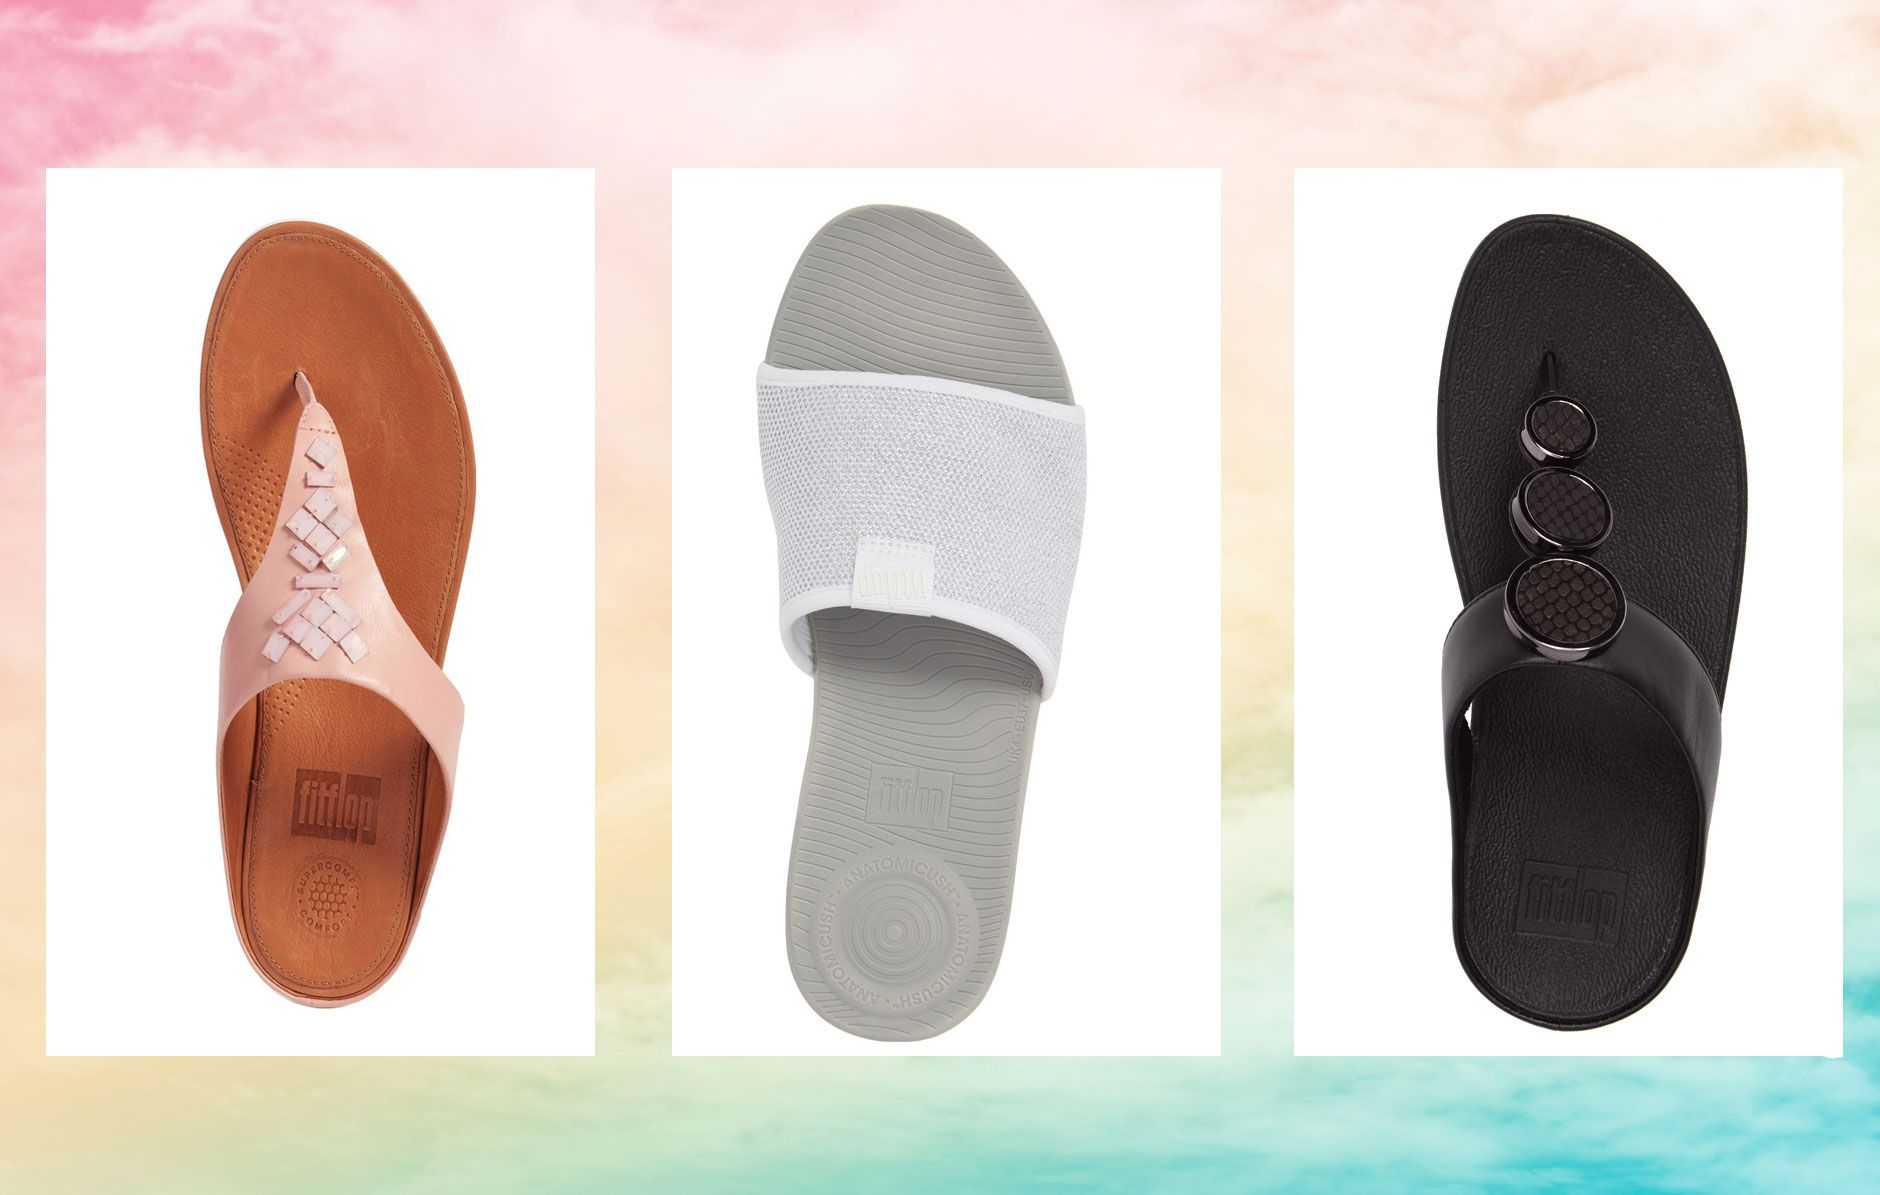 FitFlop Sandals On Sale Now At Nordstrom